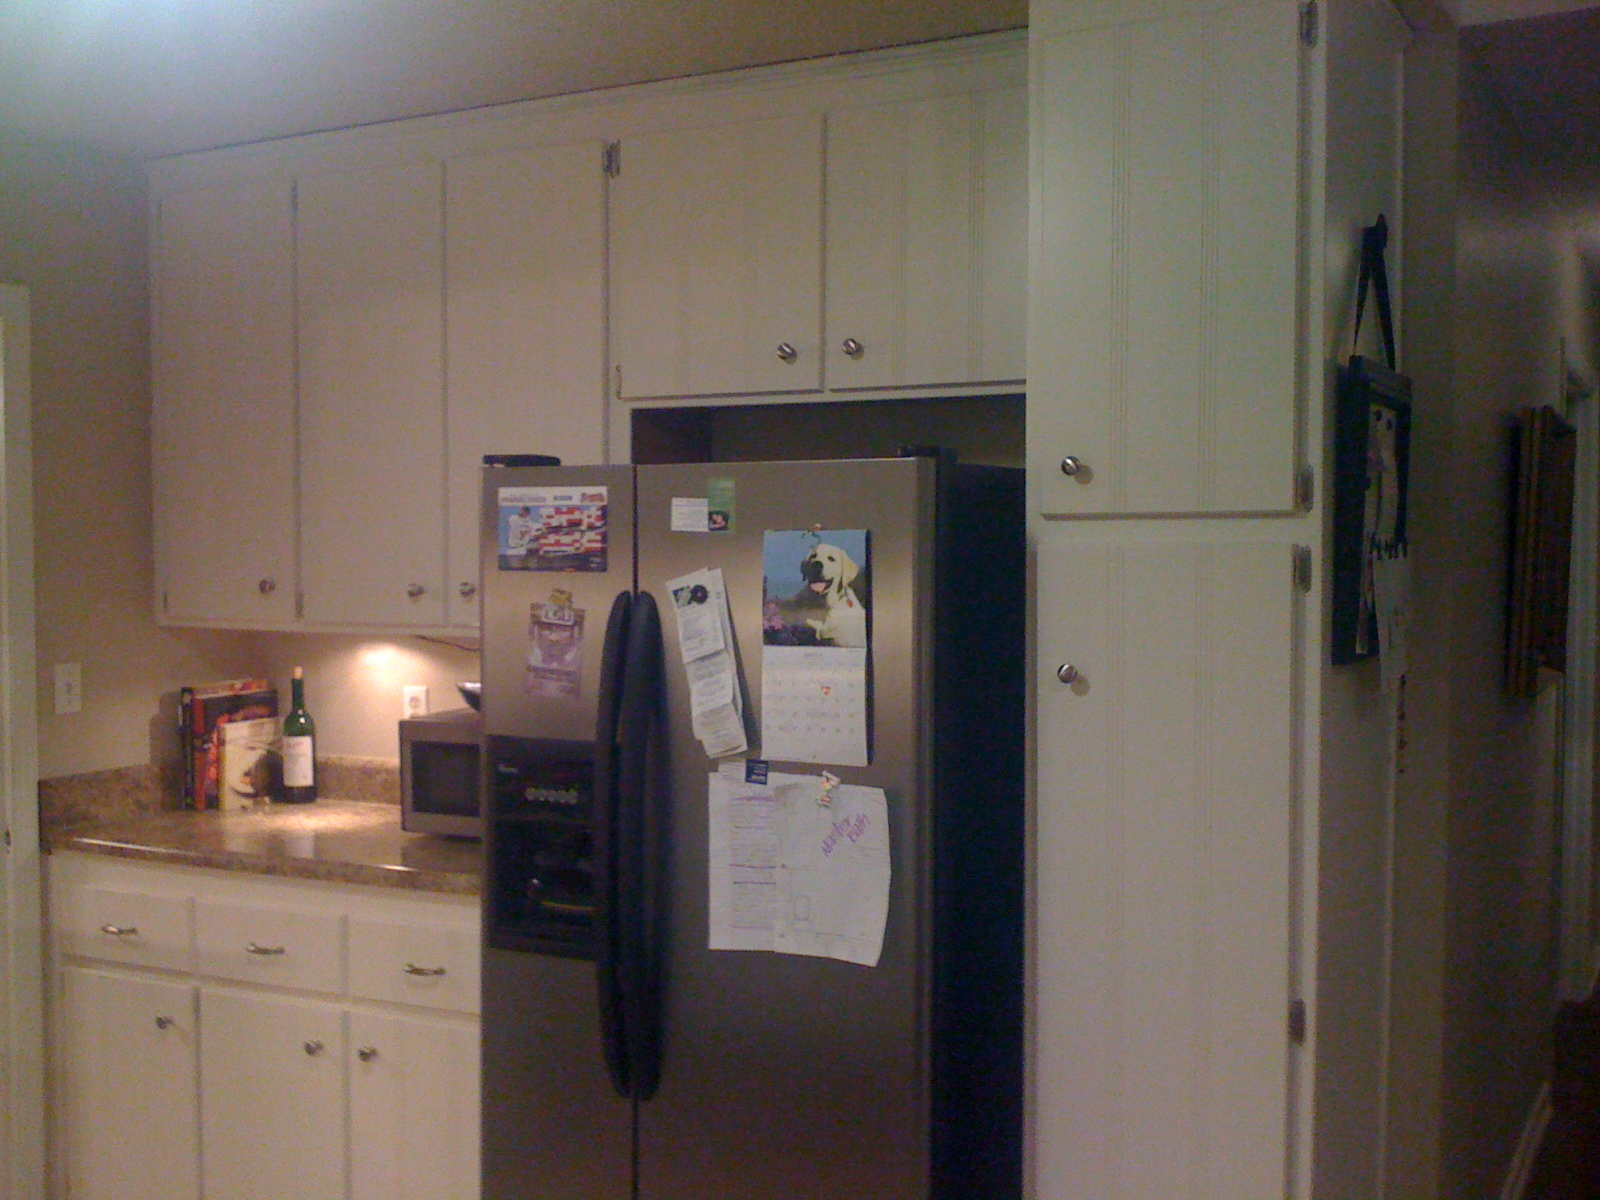 And here are the kitchen cabinets now: